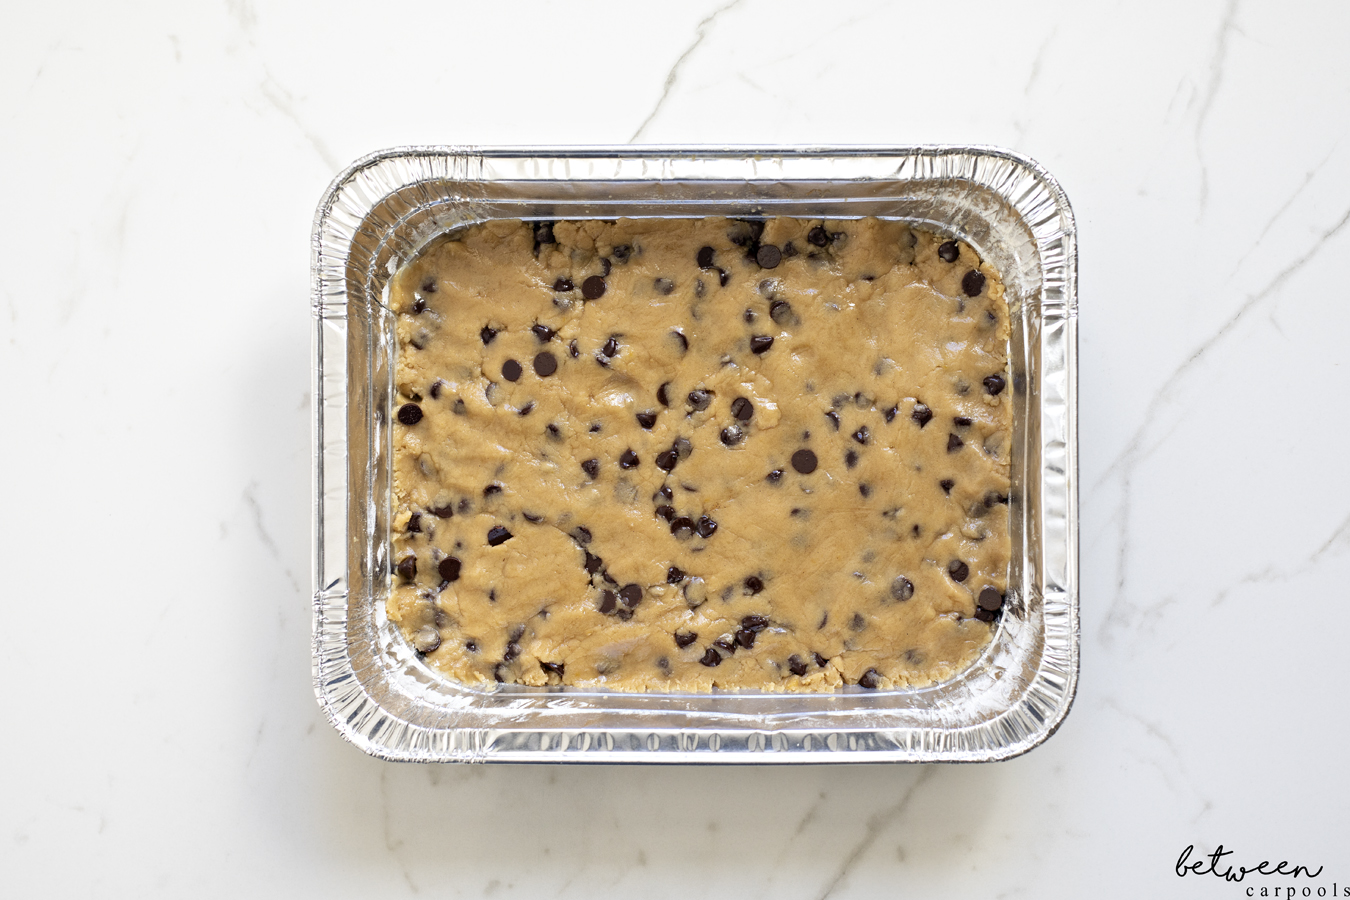 The 9x13 Life: Chocolate Chip Sticks. This classic favorite cookie just got a whole lot easier. Make chocolate chip sticks now in minutes.